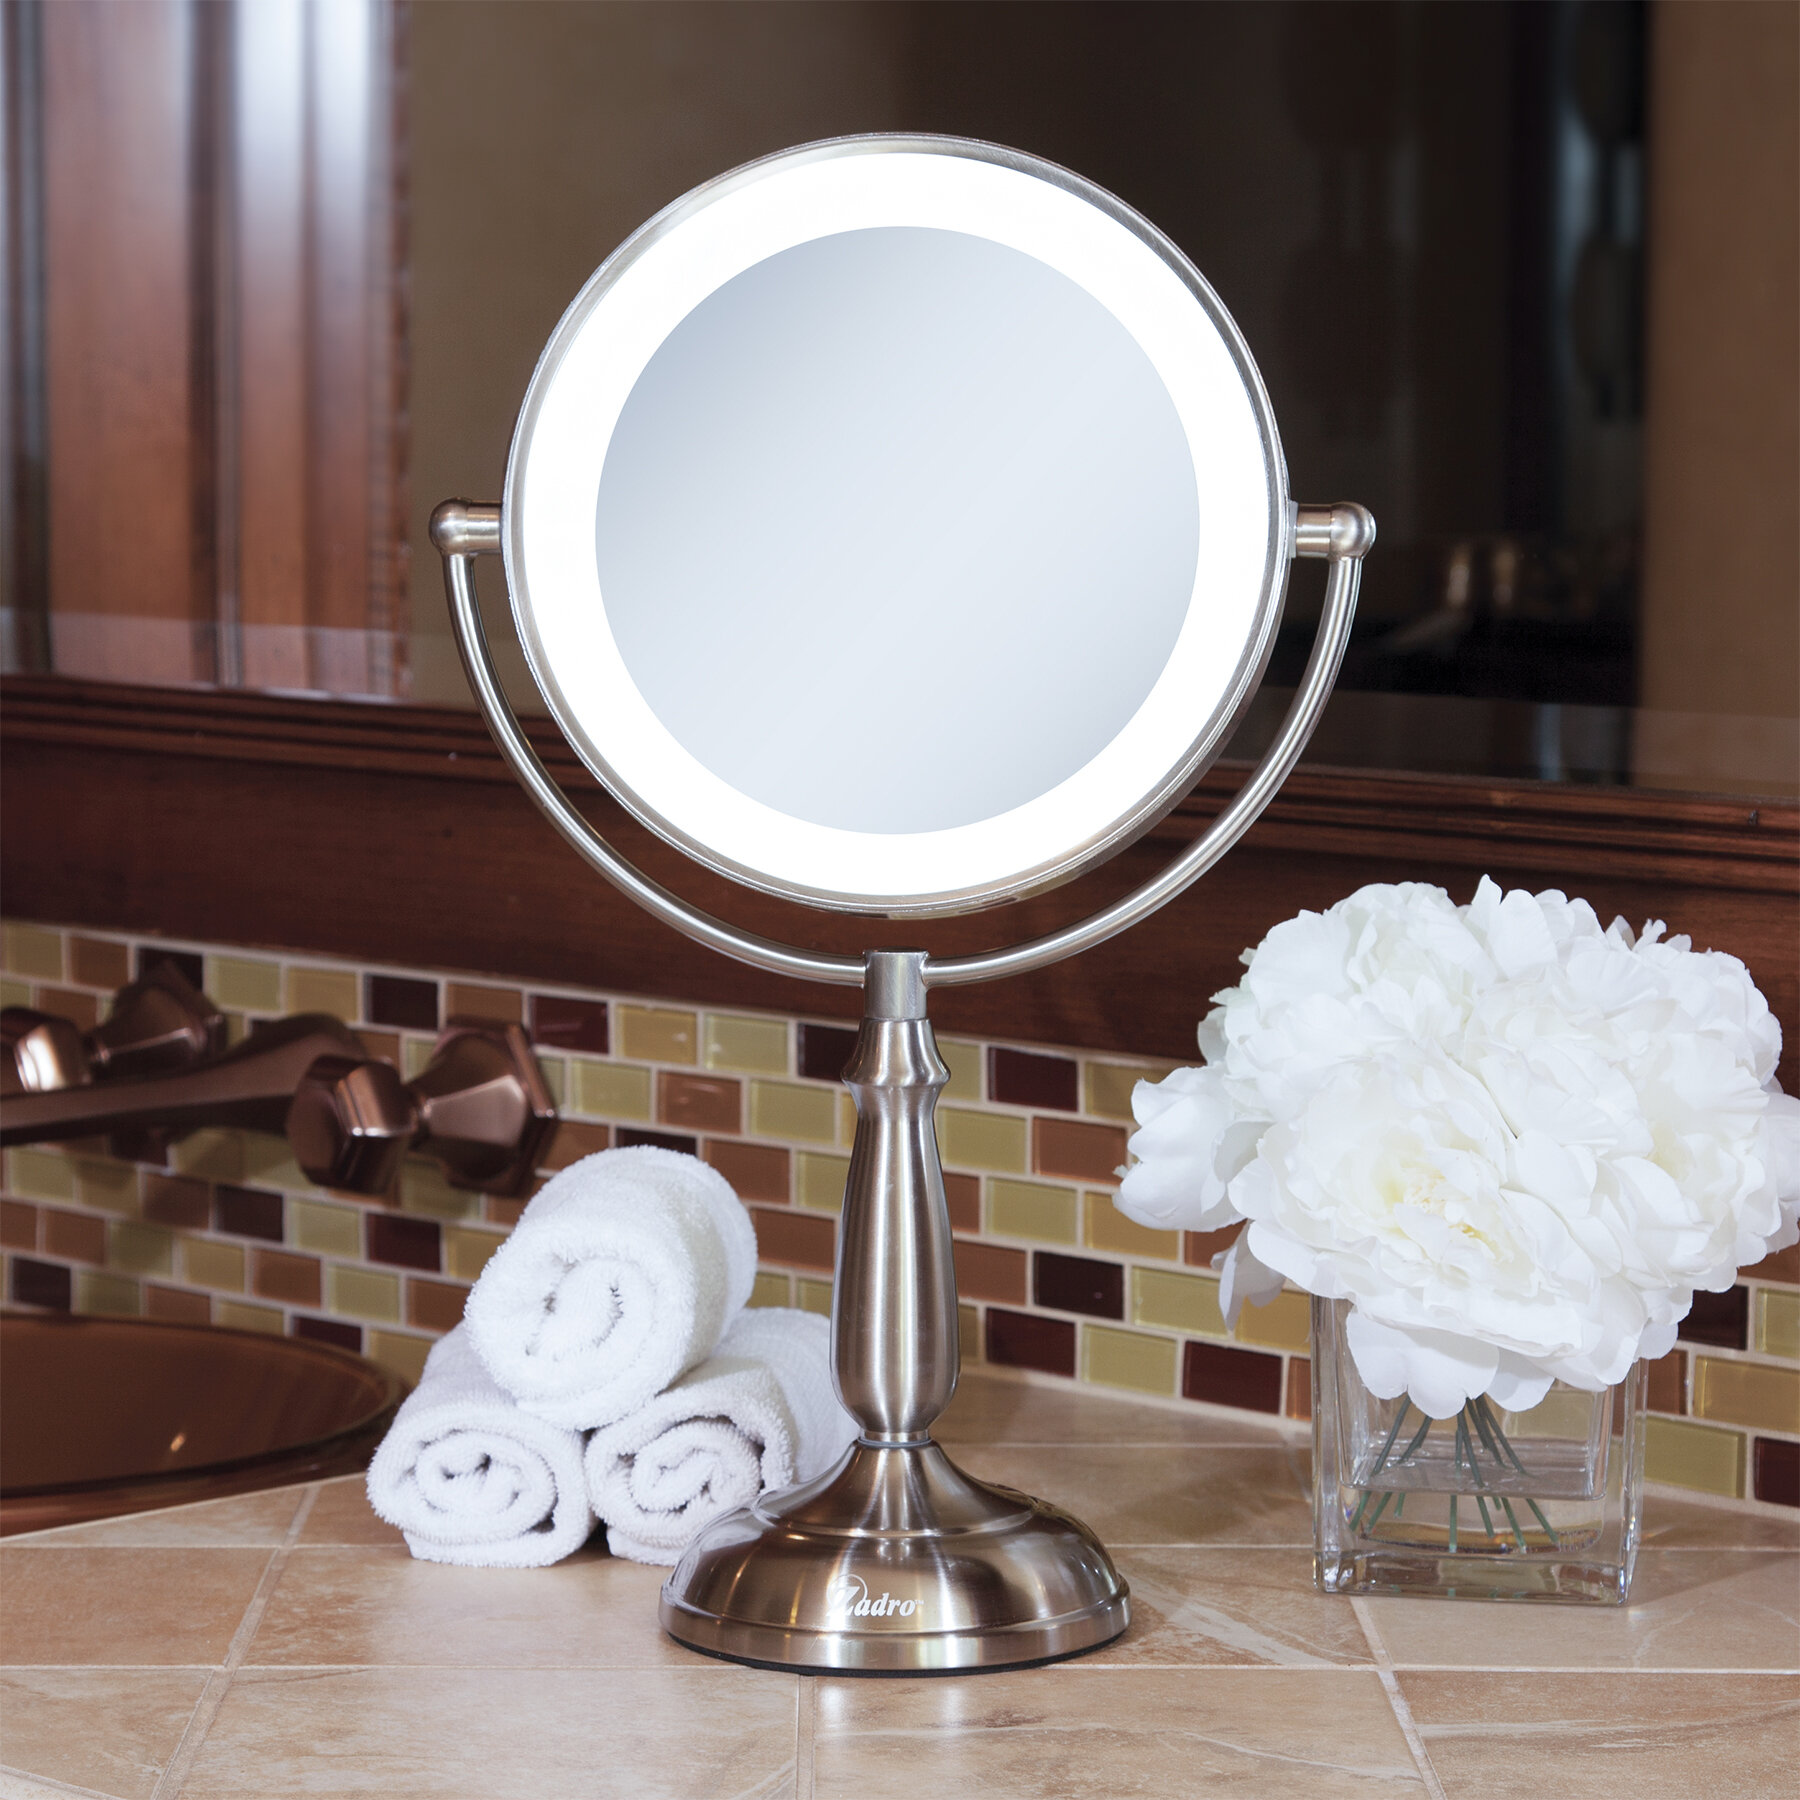 Lighted Vanity Mirror.Aldrick Dimmable Touch Ultra Bright Dual Sided Led Lighted Vanity Mirror